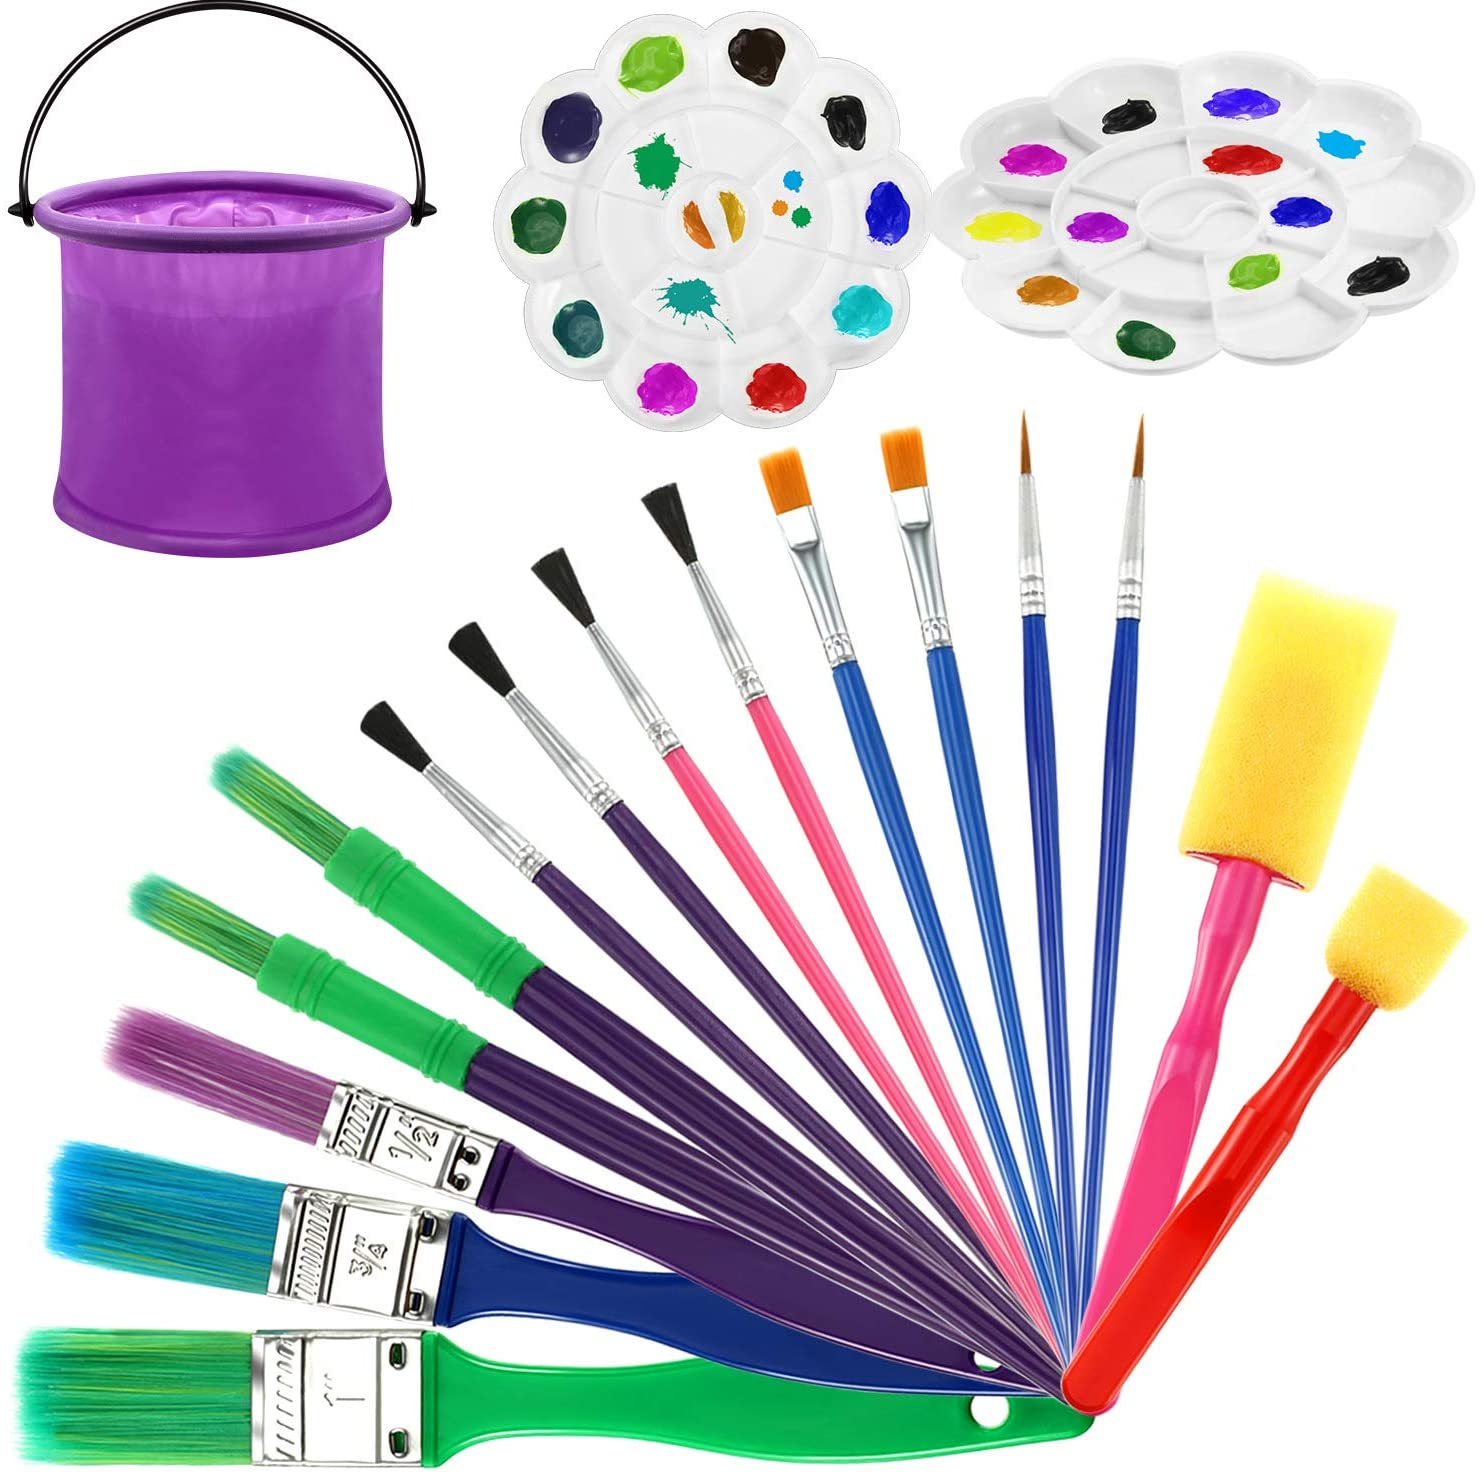 Kids Paint Brushes Set Painting Tool for Kids, Including 15 Paint Brushes, 2 Tray Palettes Painting Tray, 1 Folding Bucket, Painting Tool Kits for Acrylic Watercolor Oil Tempera Paint Party